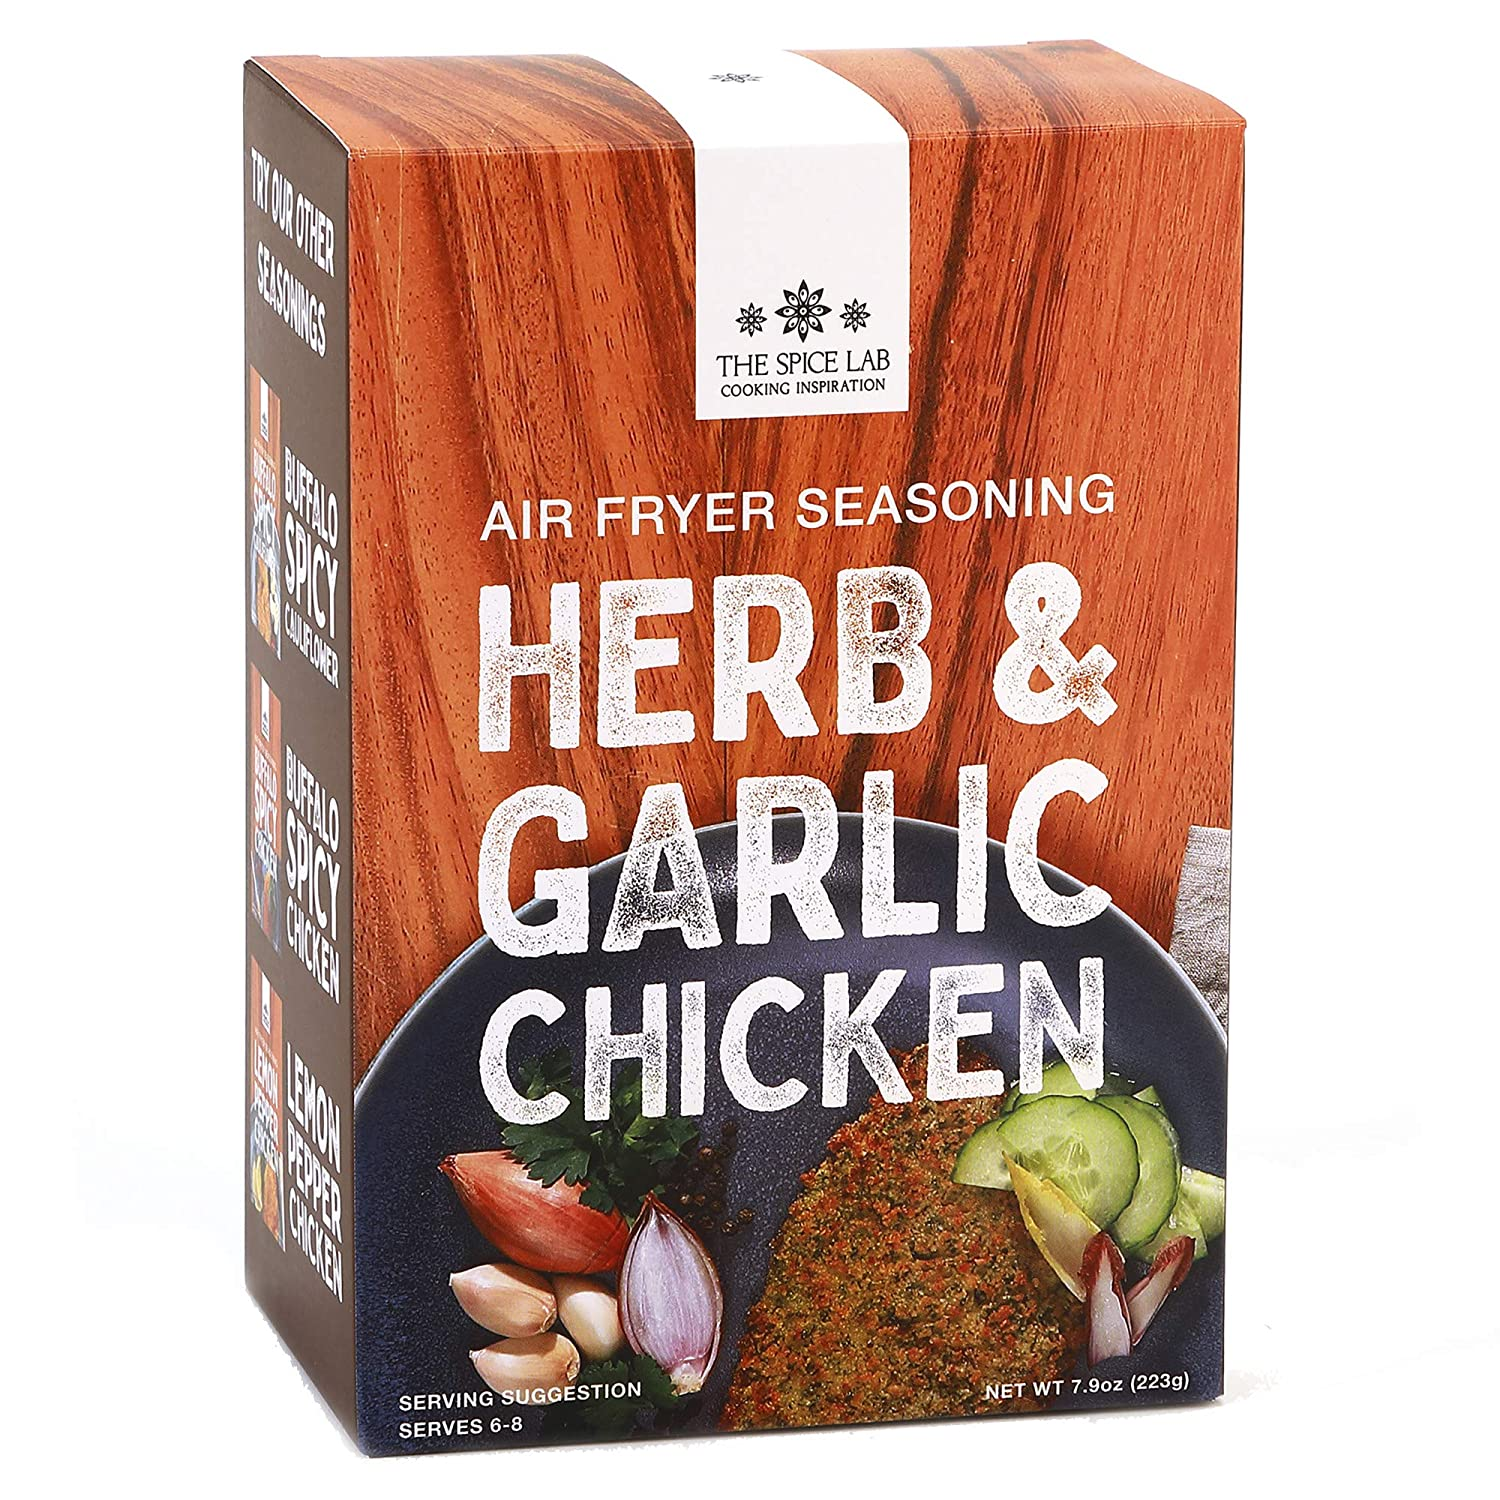 The Spice Lab - Herb & Garlic Air Fryer Panko Seasoning Kit - 7.9oz. - Flavored Panko Breadcrumbs and Rice flour for Chicken, Pork Chops, and Vegetables - serves 8